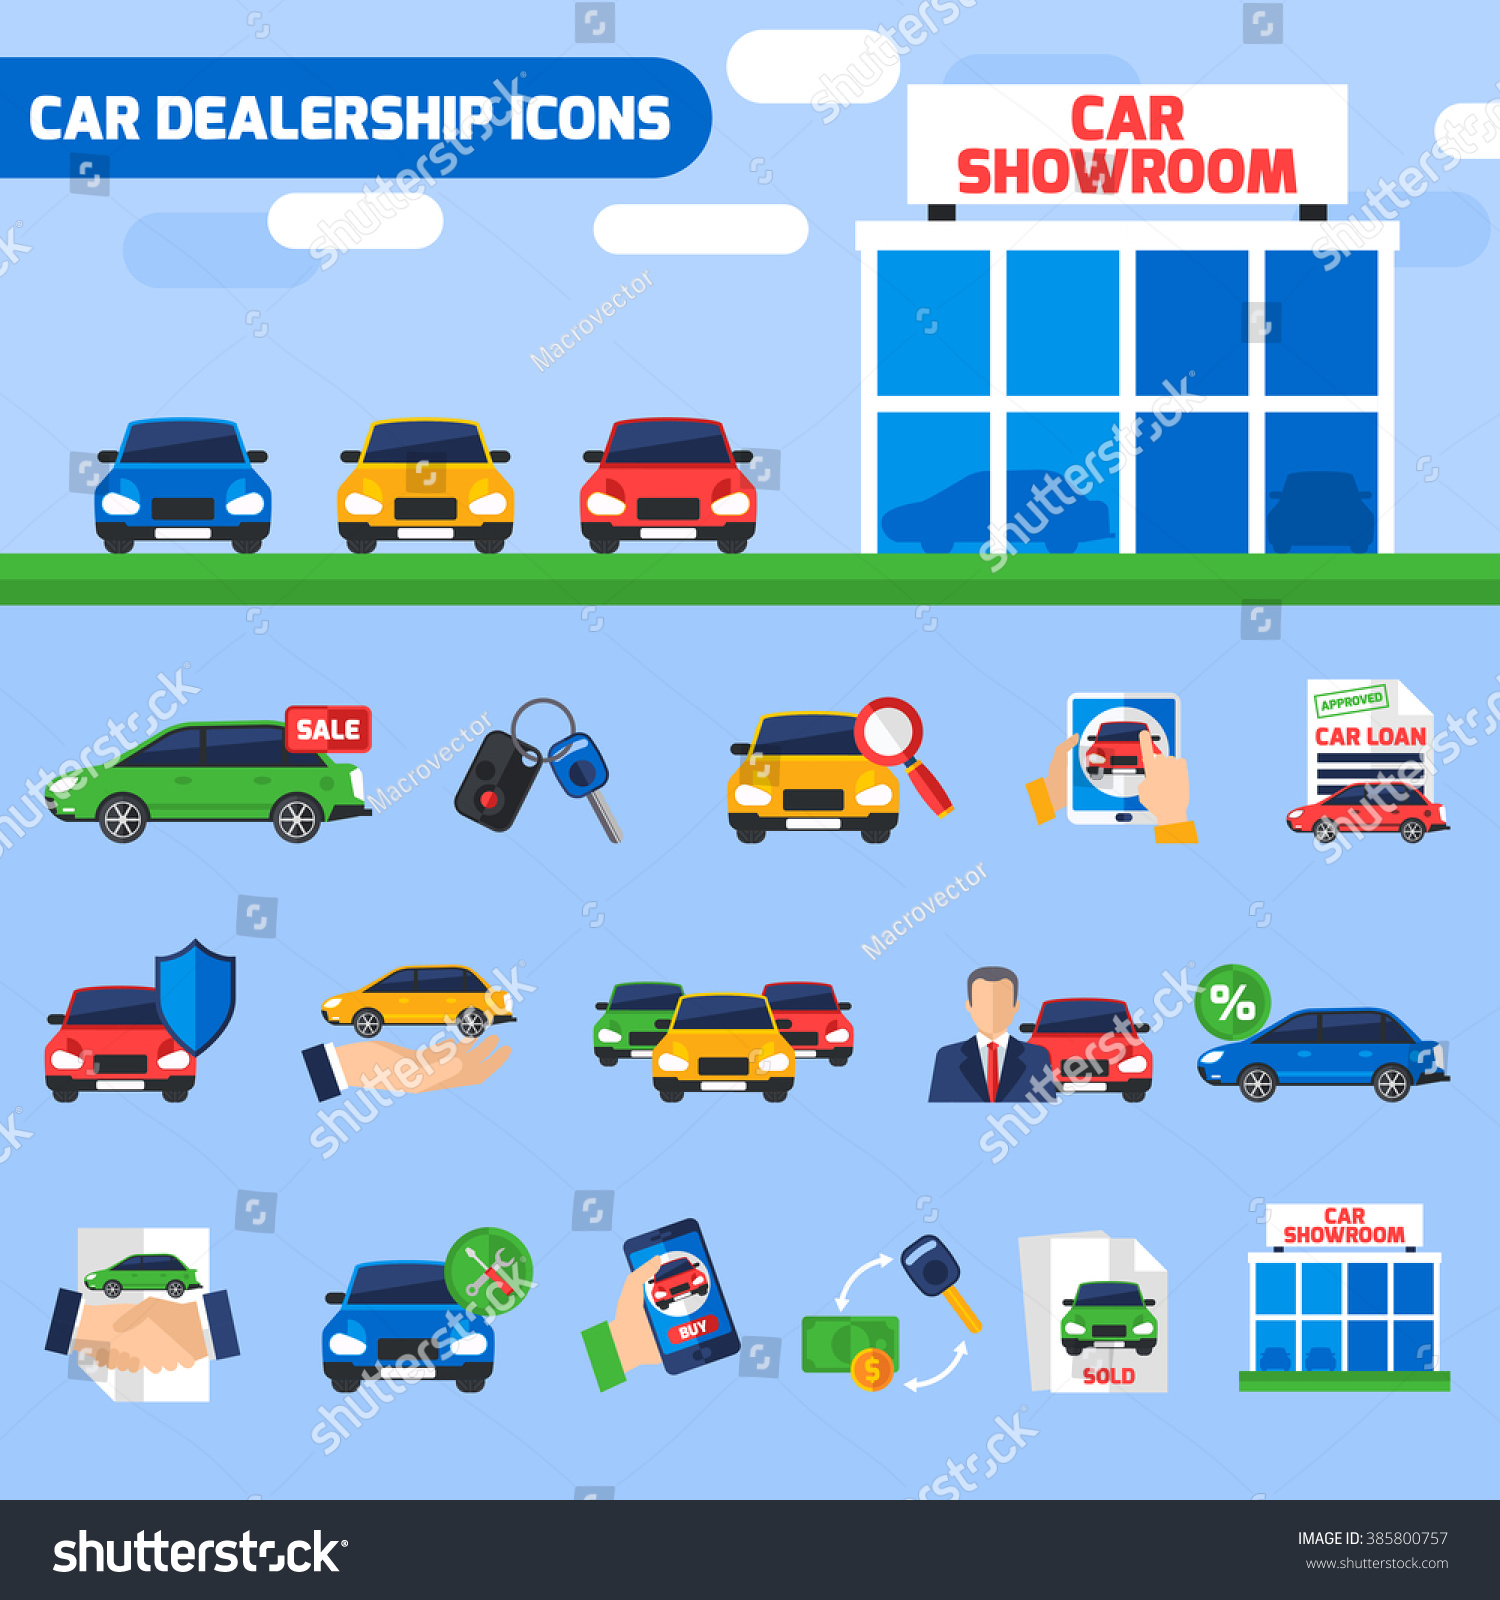 Car Dealership Center Flat Icons Composition With New